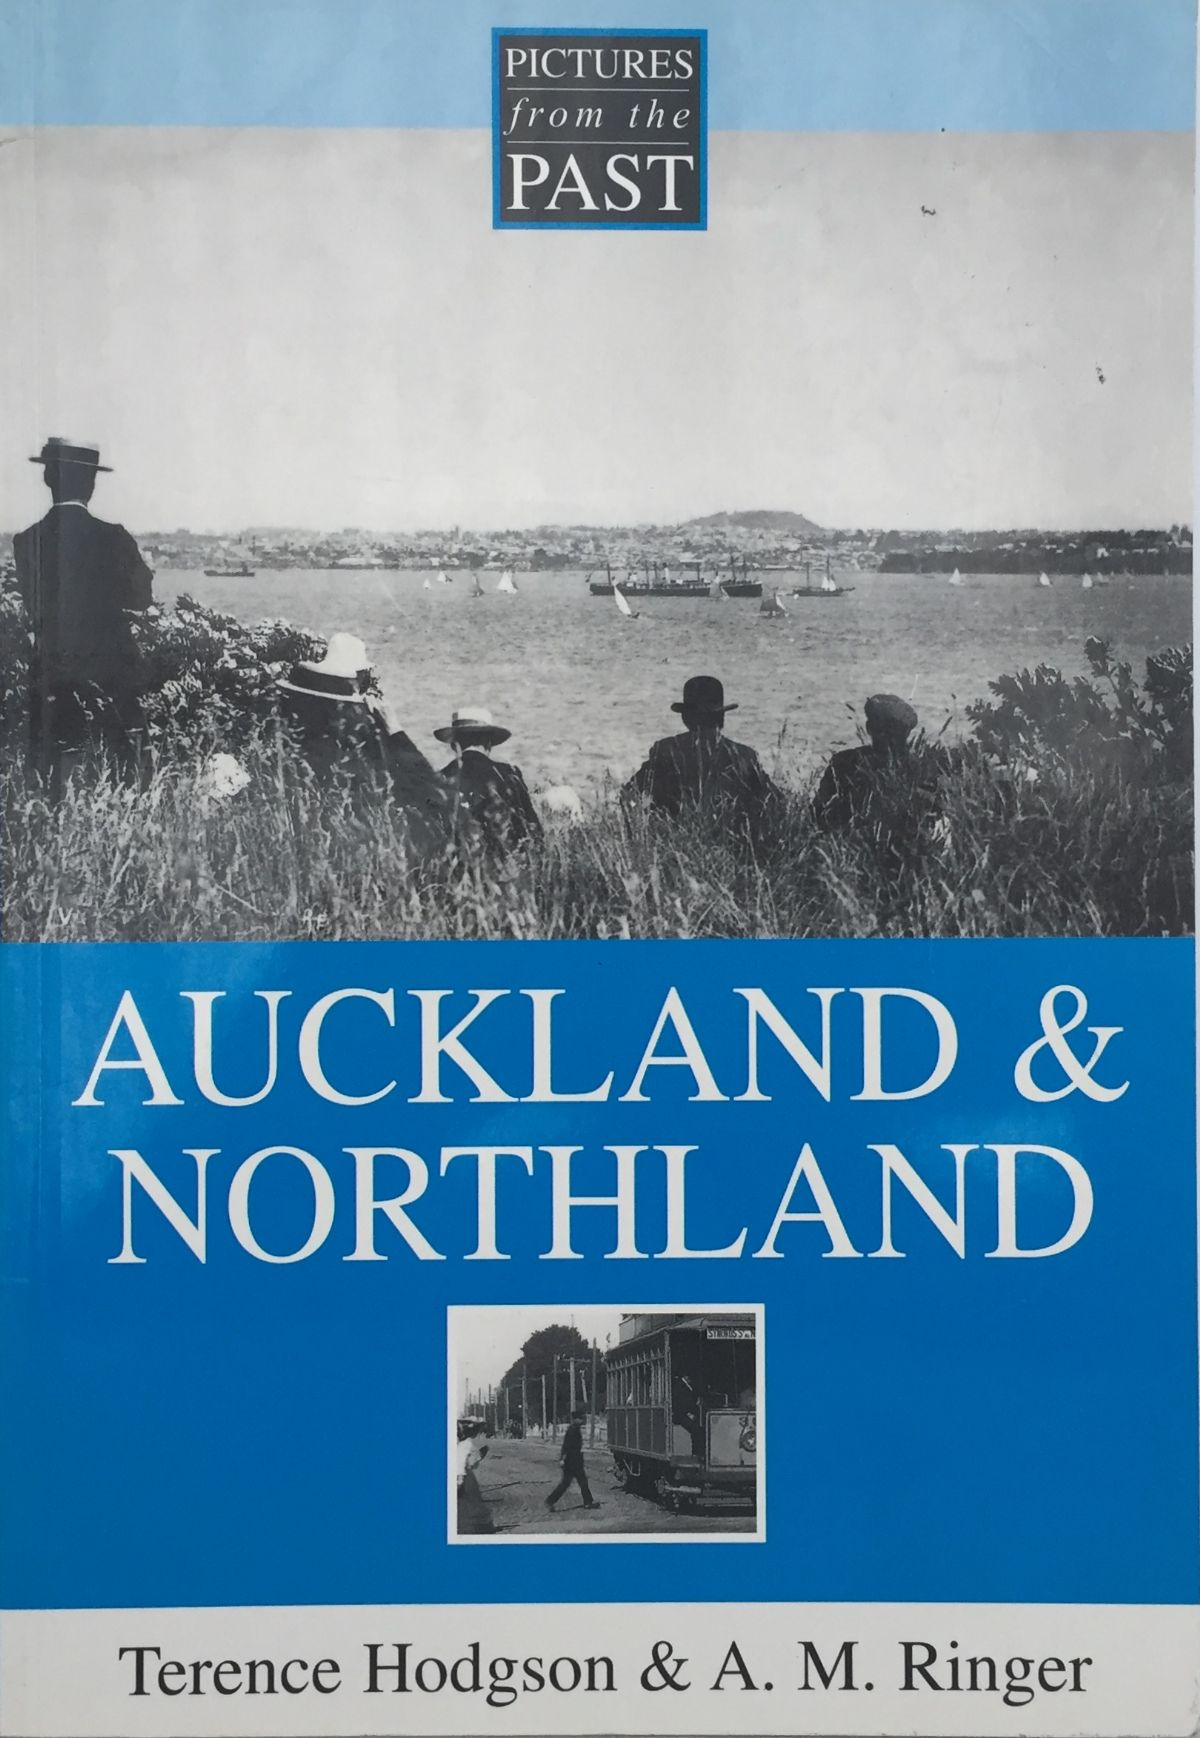 Auckland & Northland : Pictures from the Past